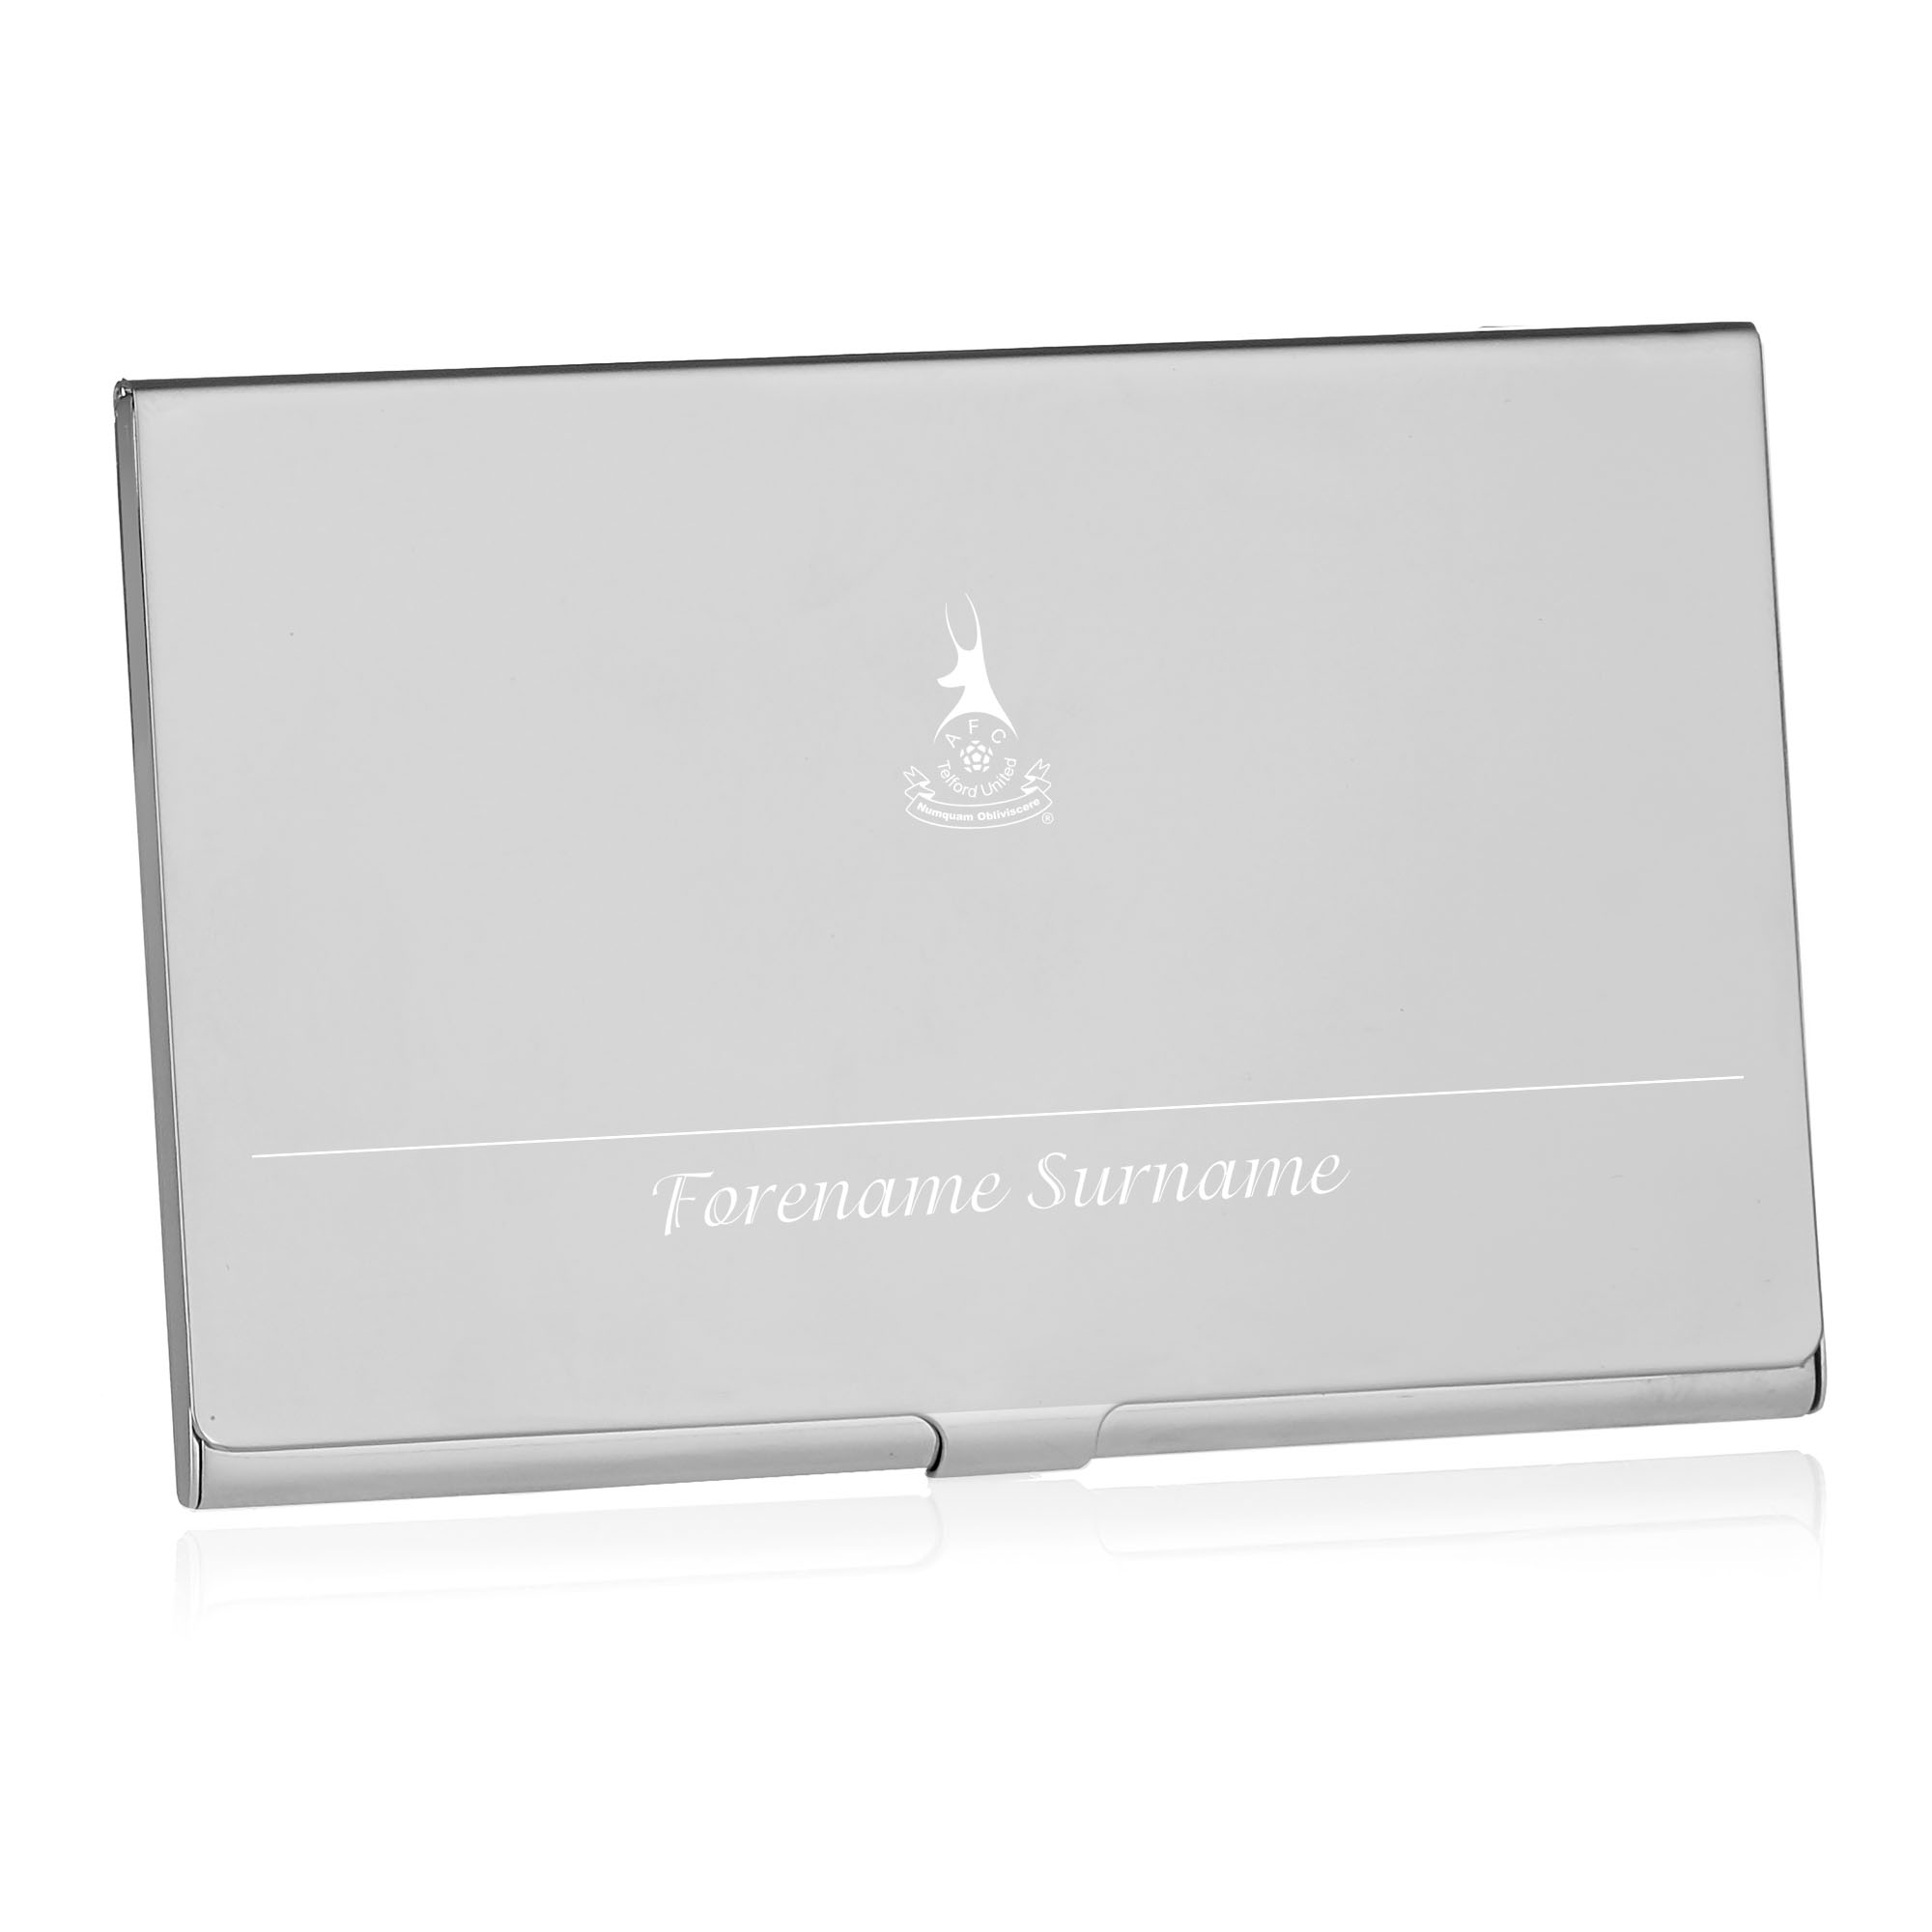 AFC Telford United Executive Business Card Holder